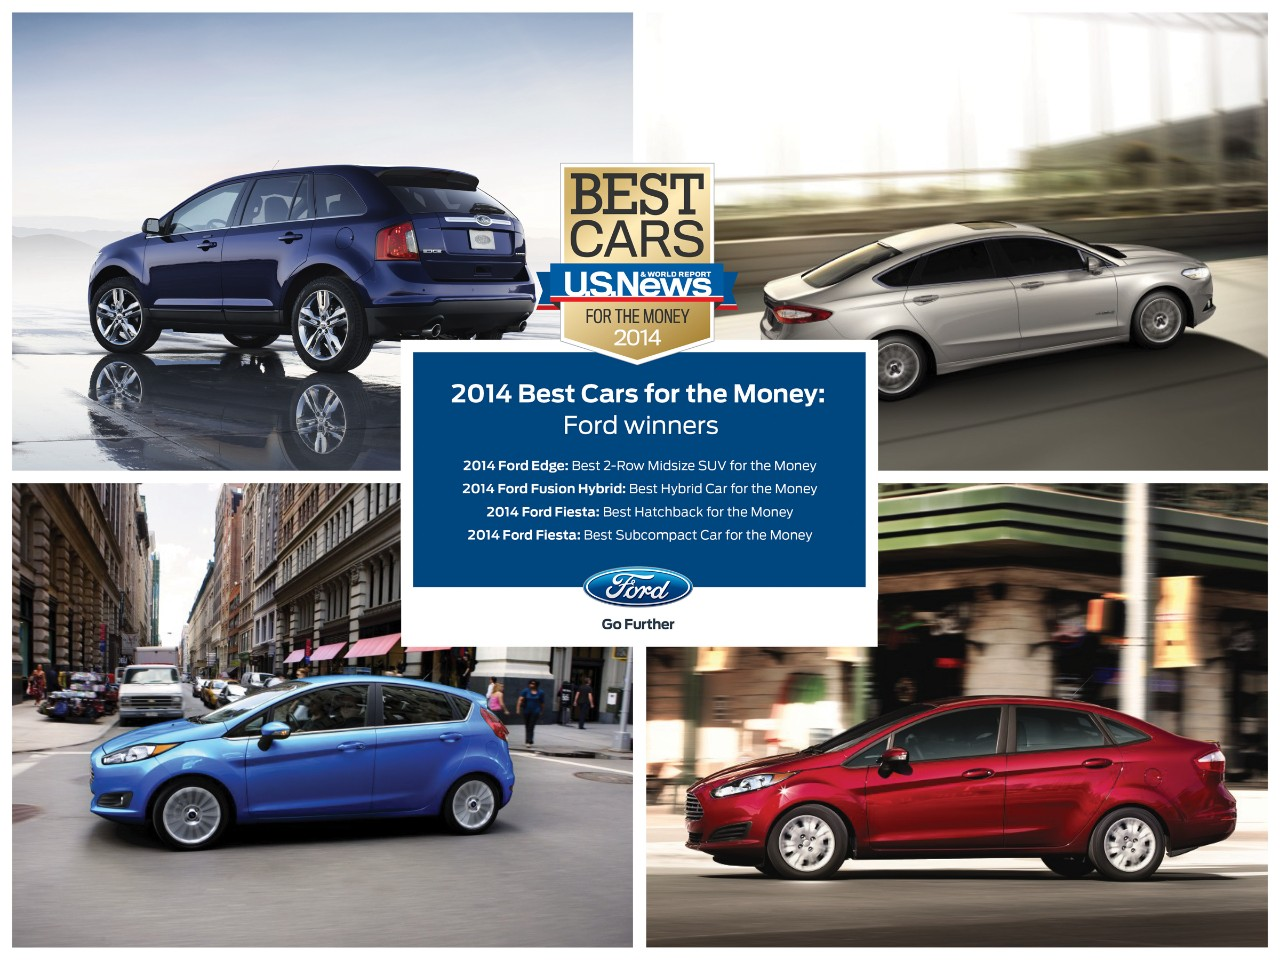 U.S. News & World Report Make Ford the Most-Awarded Brand